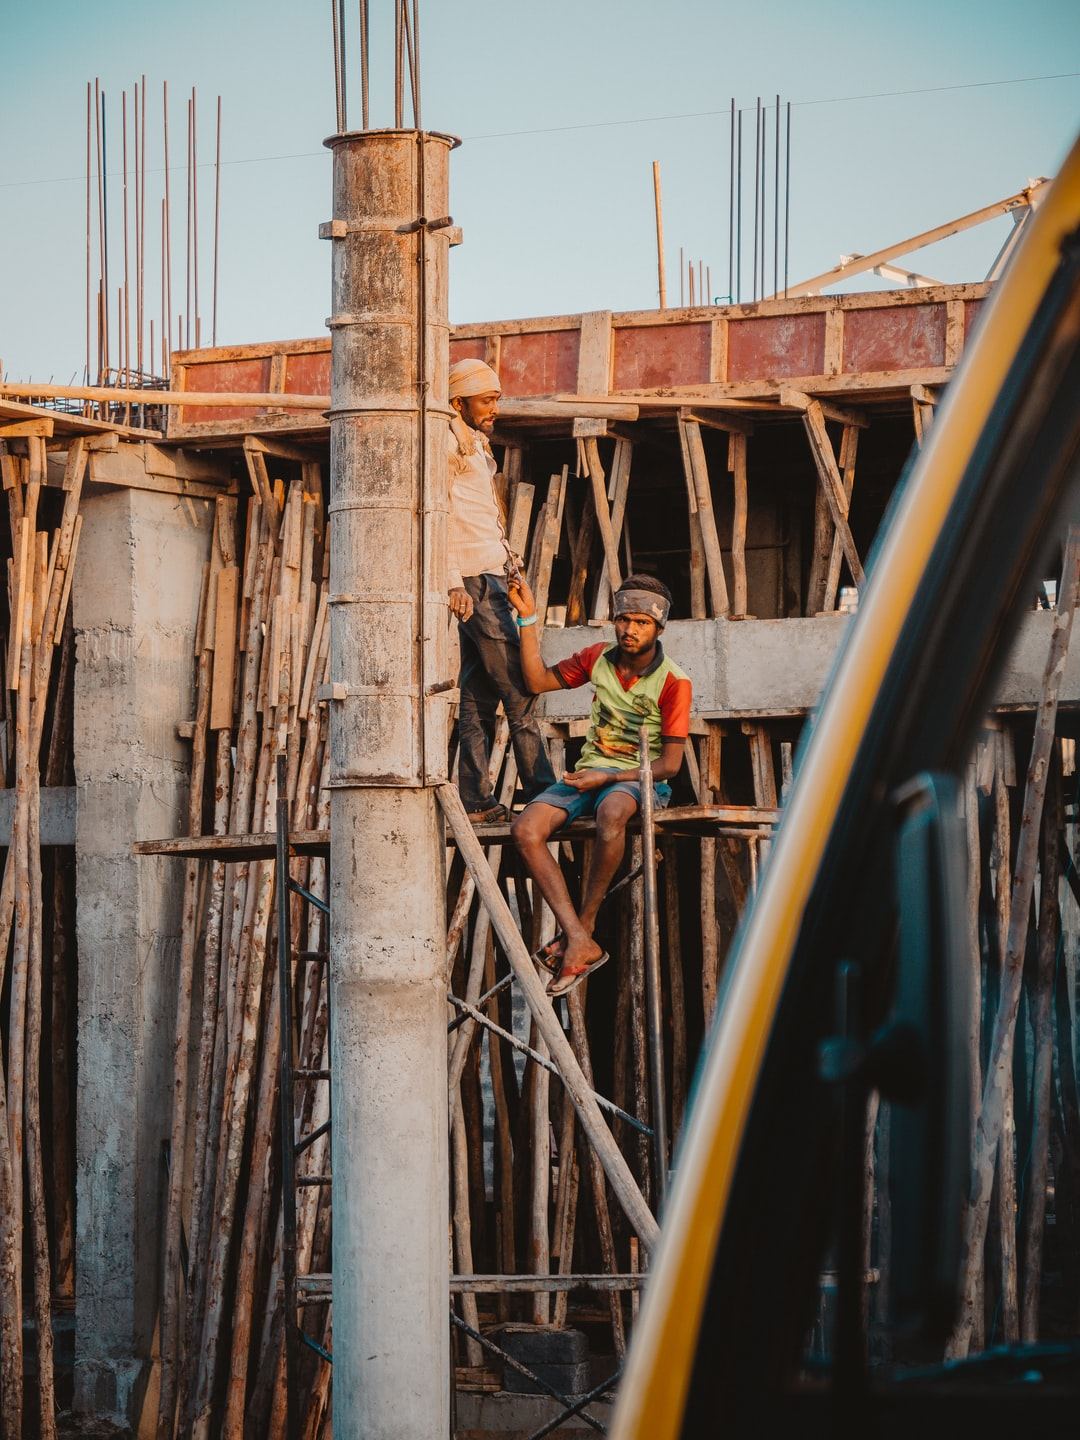 CONSTRUCTION ACCIDENT INJURY STATISTICS IN THE US: THE REAL FACTS